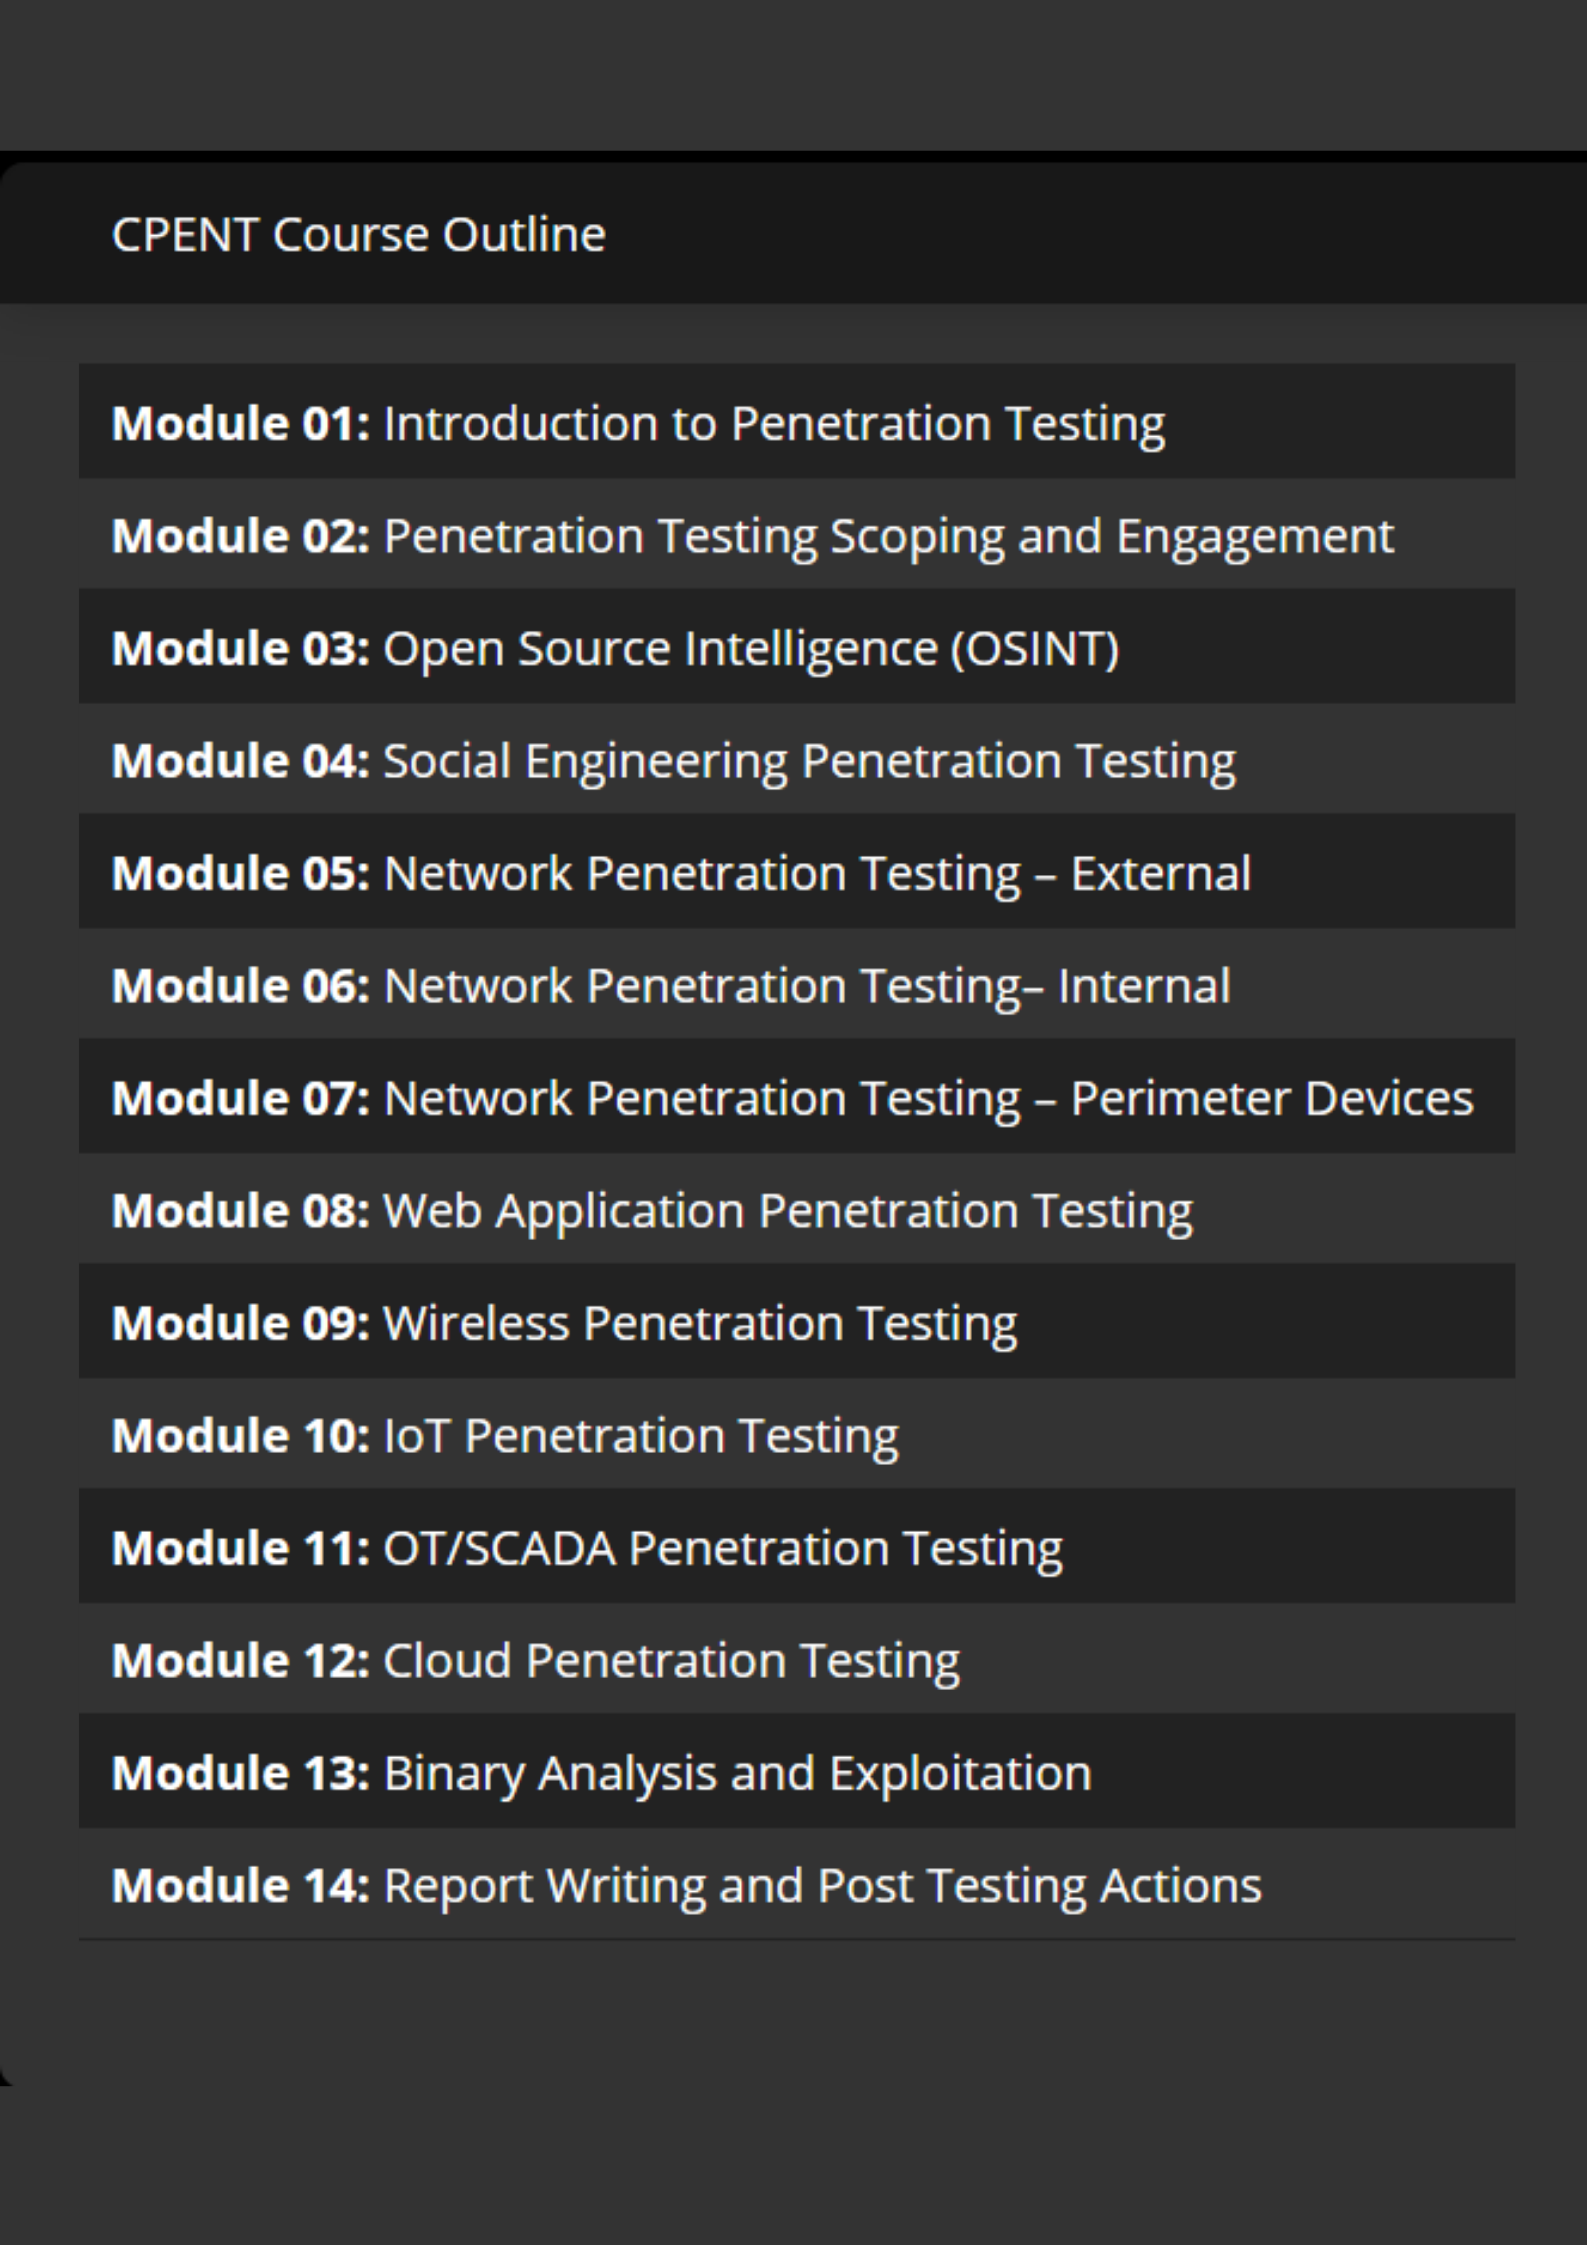 Certified Penetration Testing Professional or CPENT